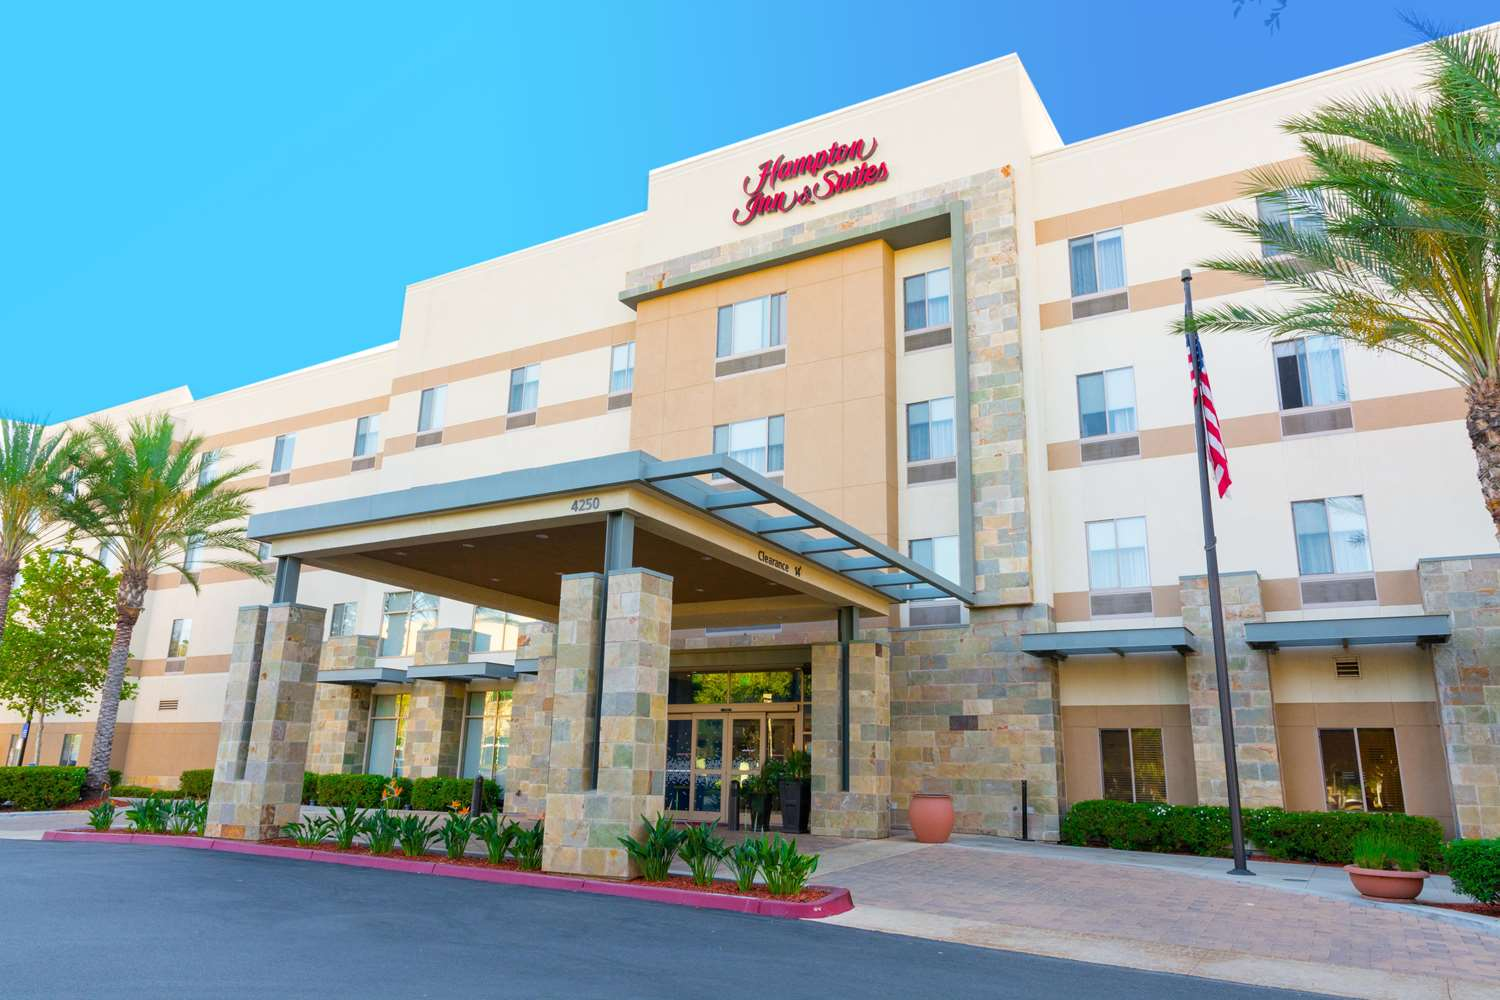 Hampton Inn & Suites East Riverside